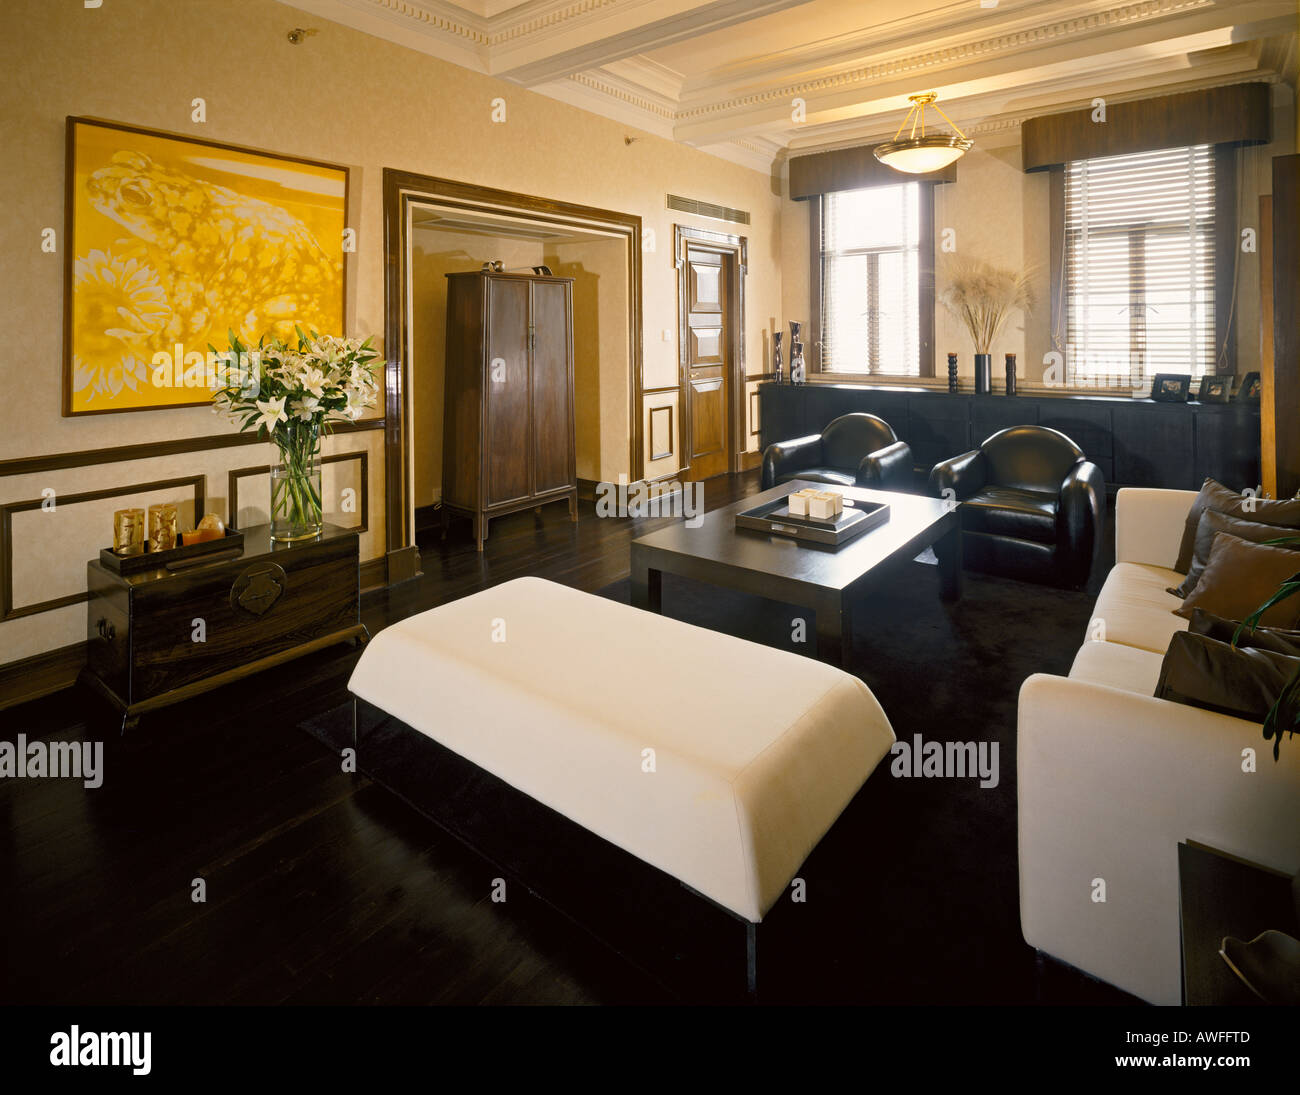 wohnzimmer von retro modern art deco wohnung grosvenor wohnungen in shanghai stockfoto bild. Black Bedroom Furniture Sets. Home Design Ideas